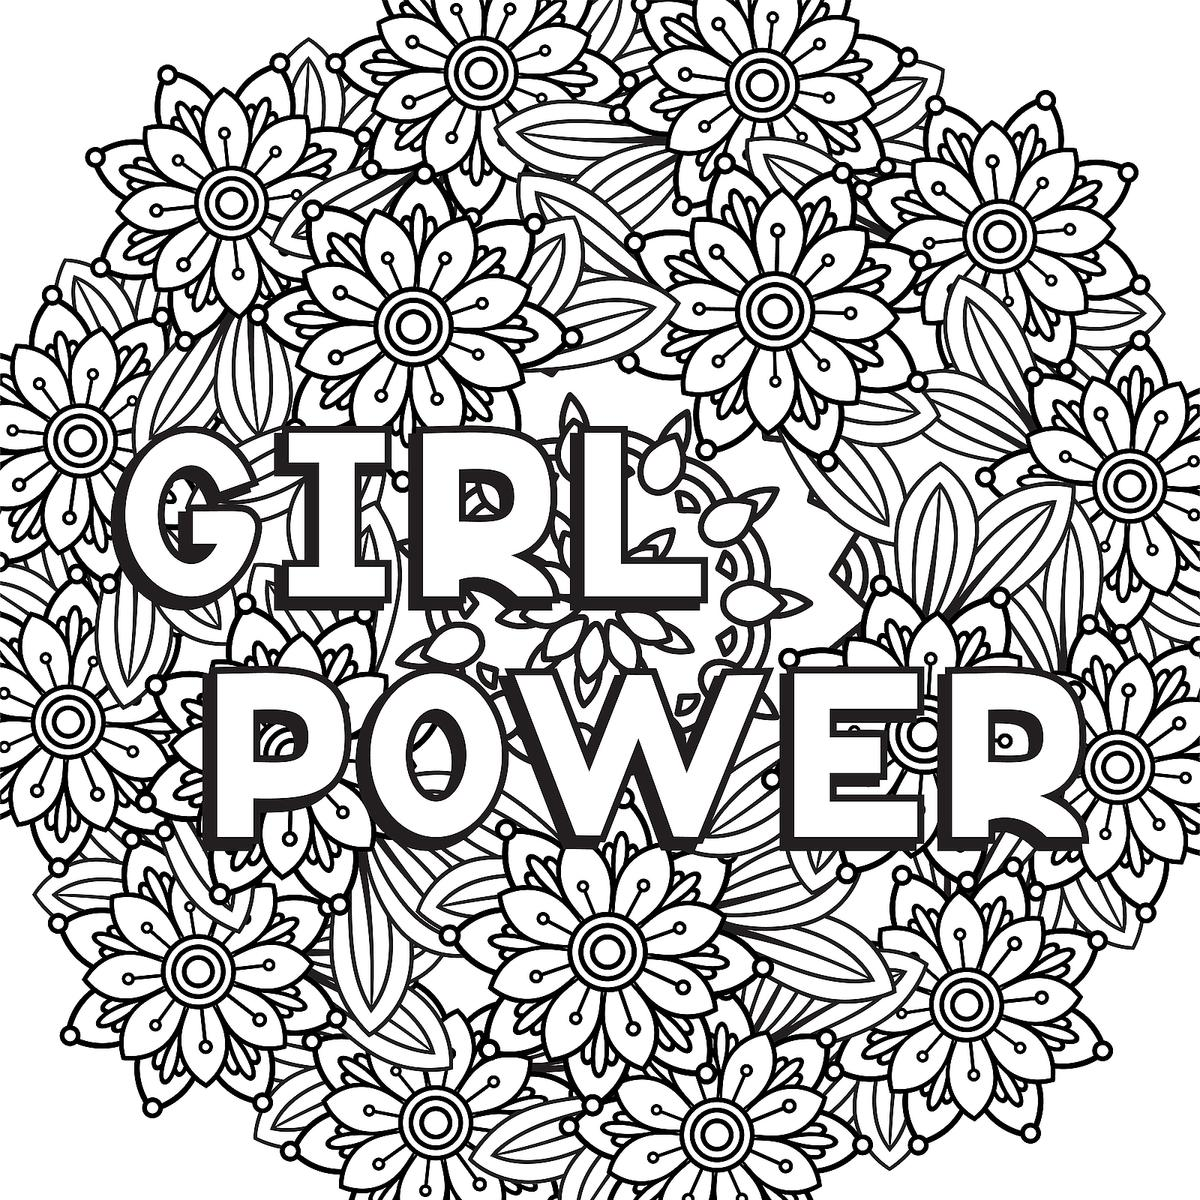 Strong Women Coloring Pages 10 Printable Coloring Pages